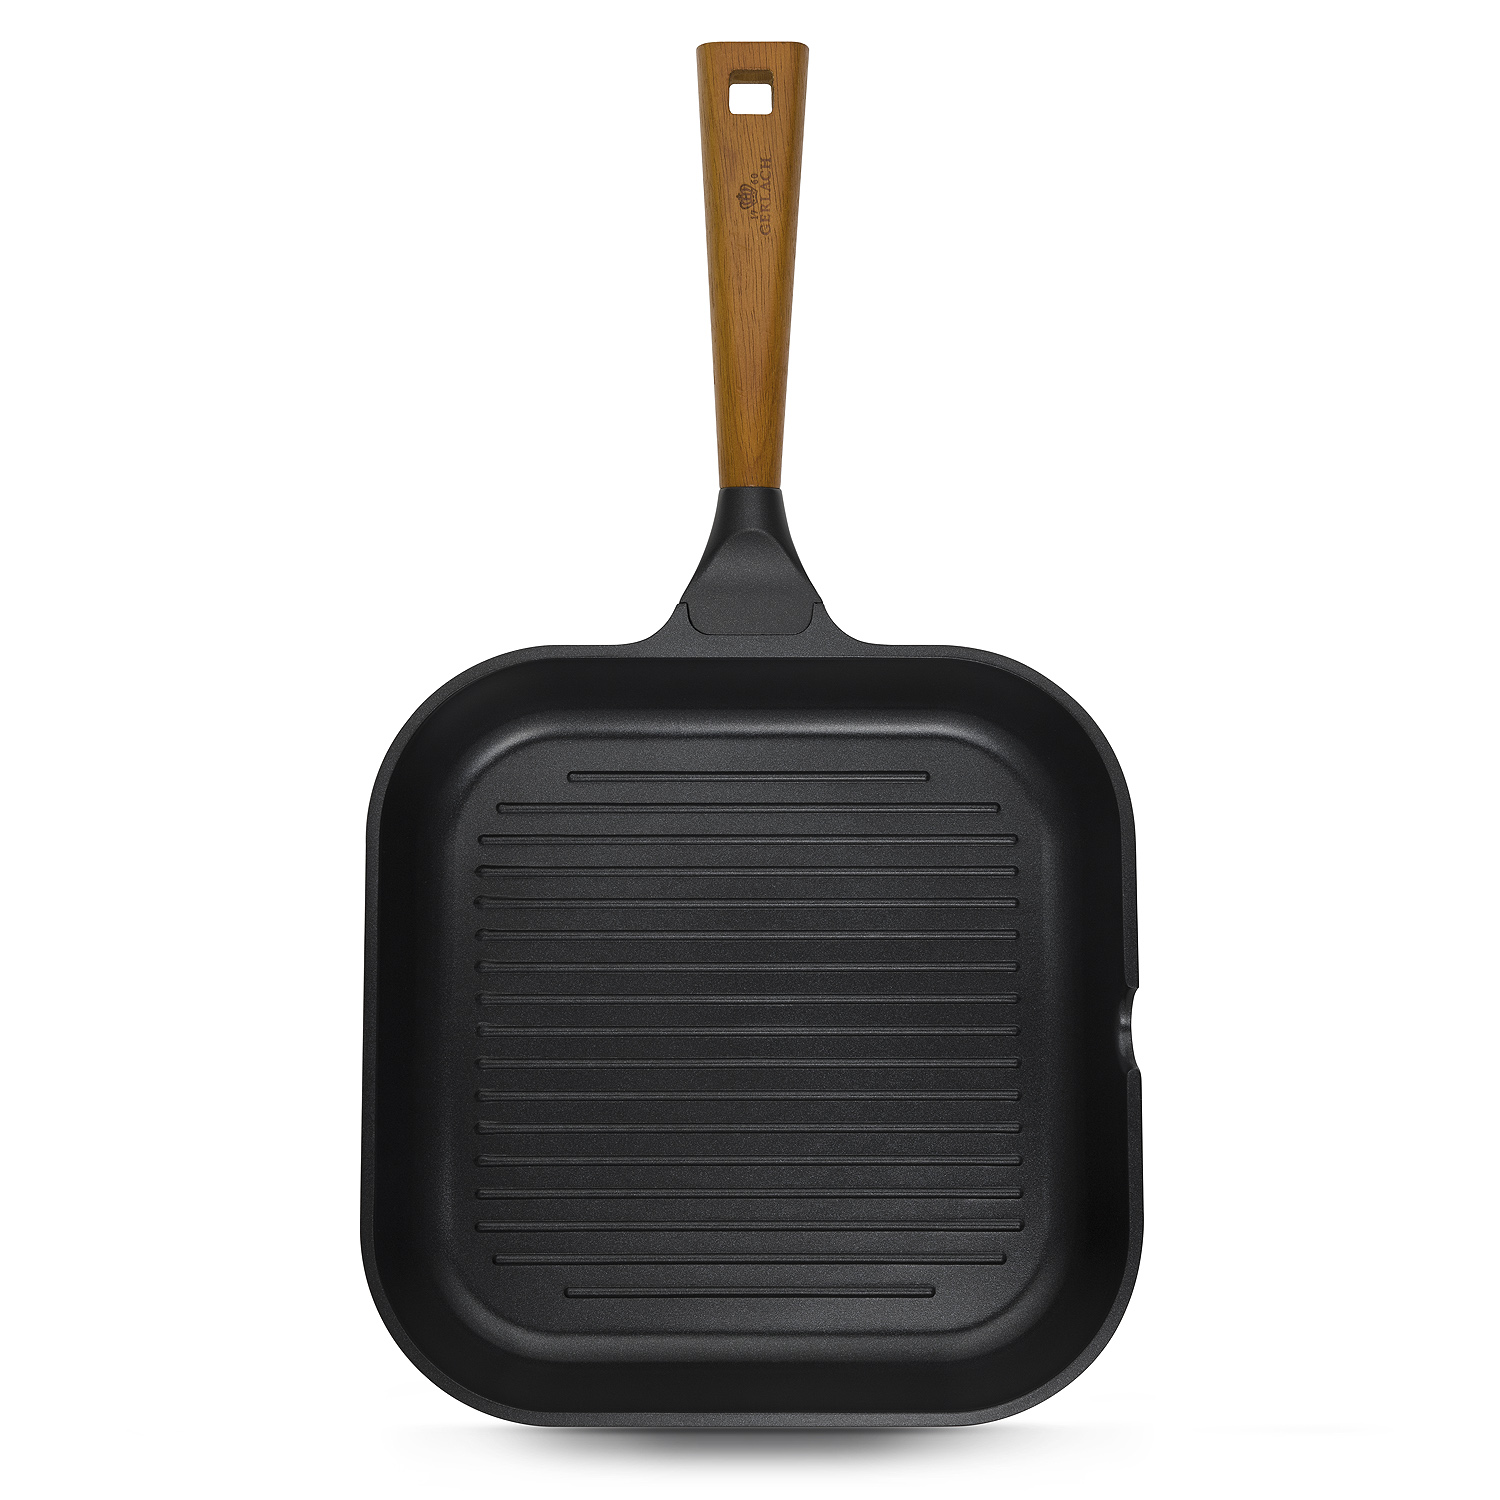 A Natur grill frying pan